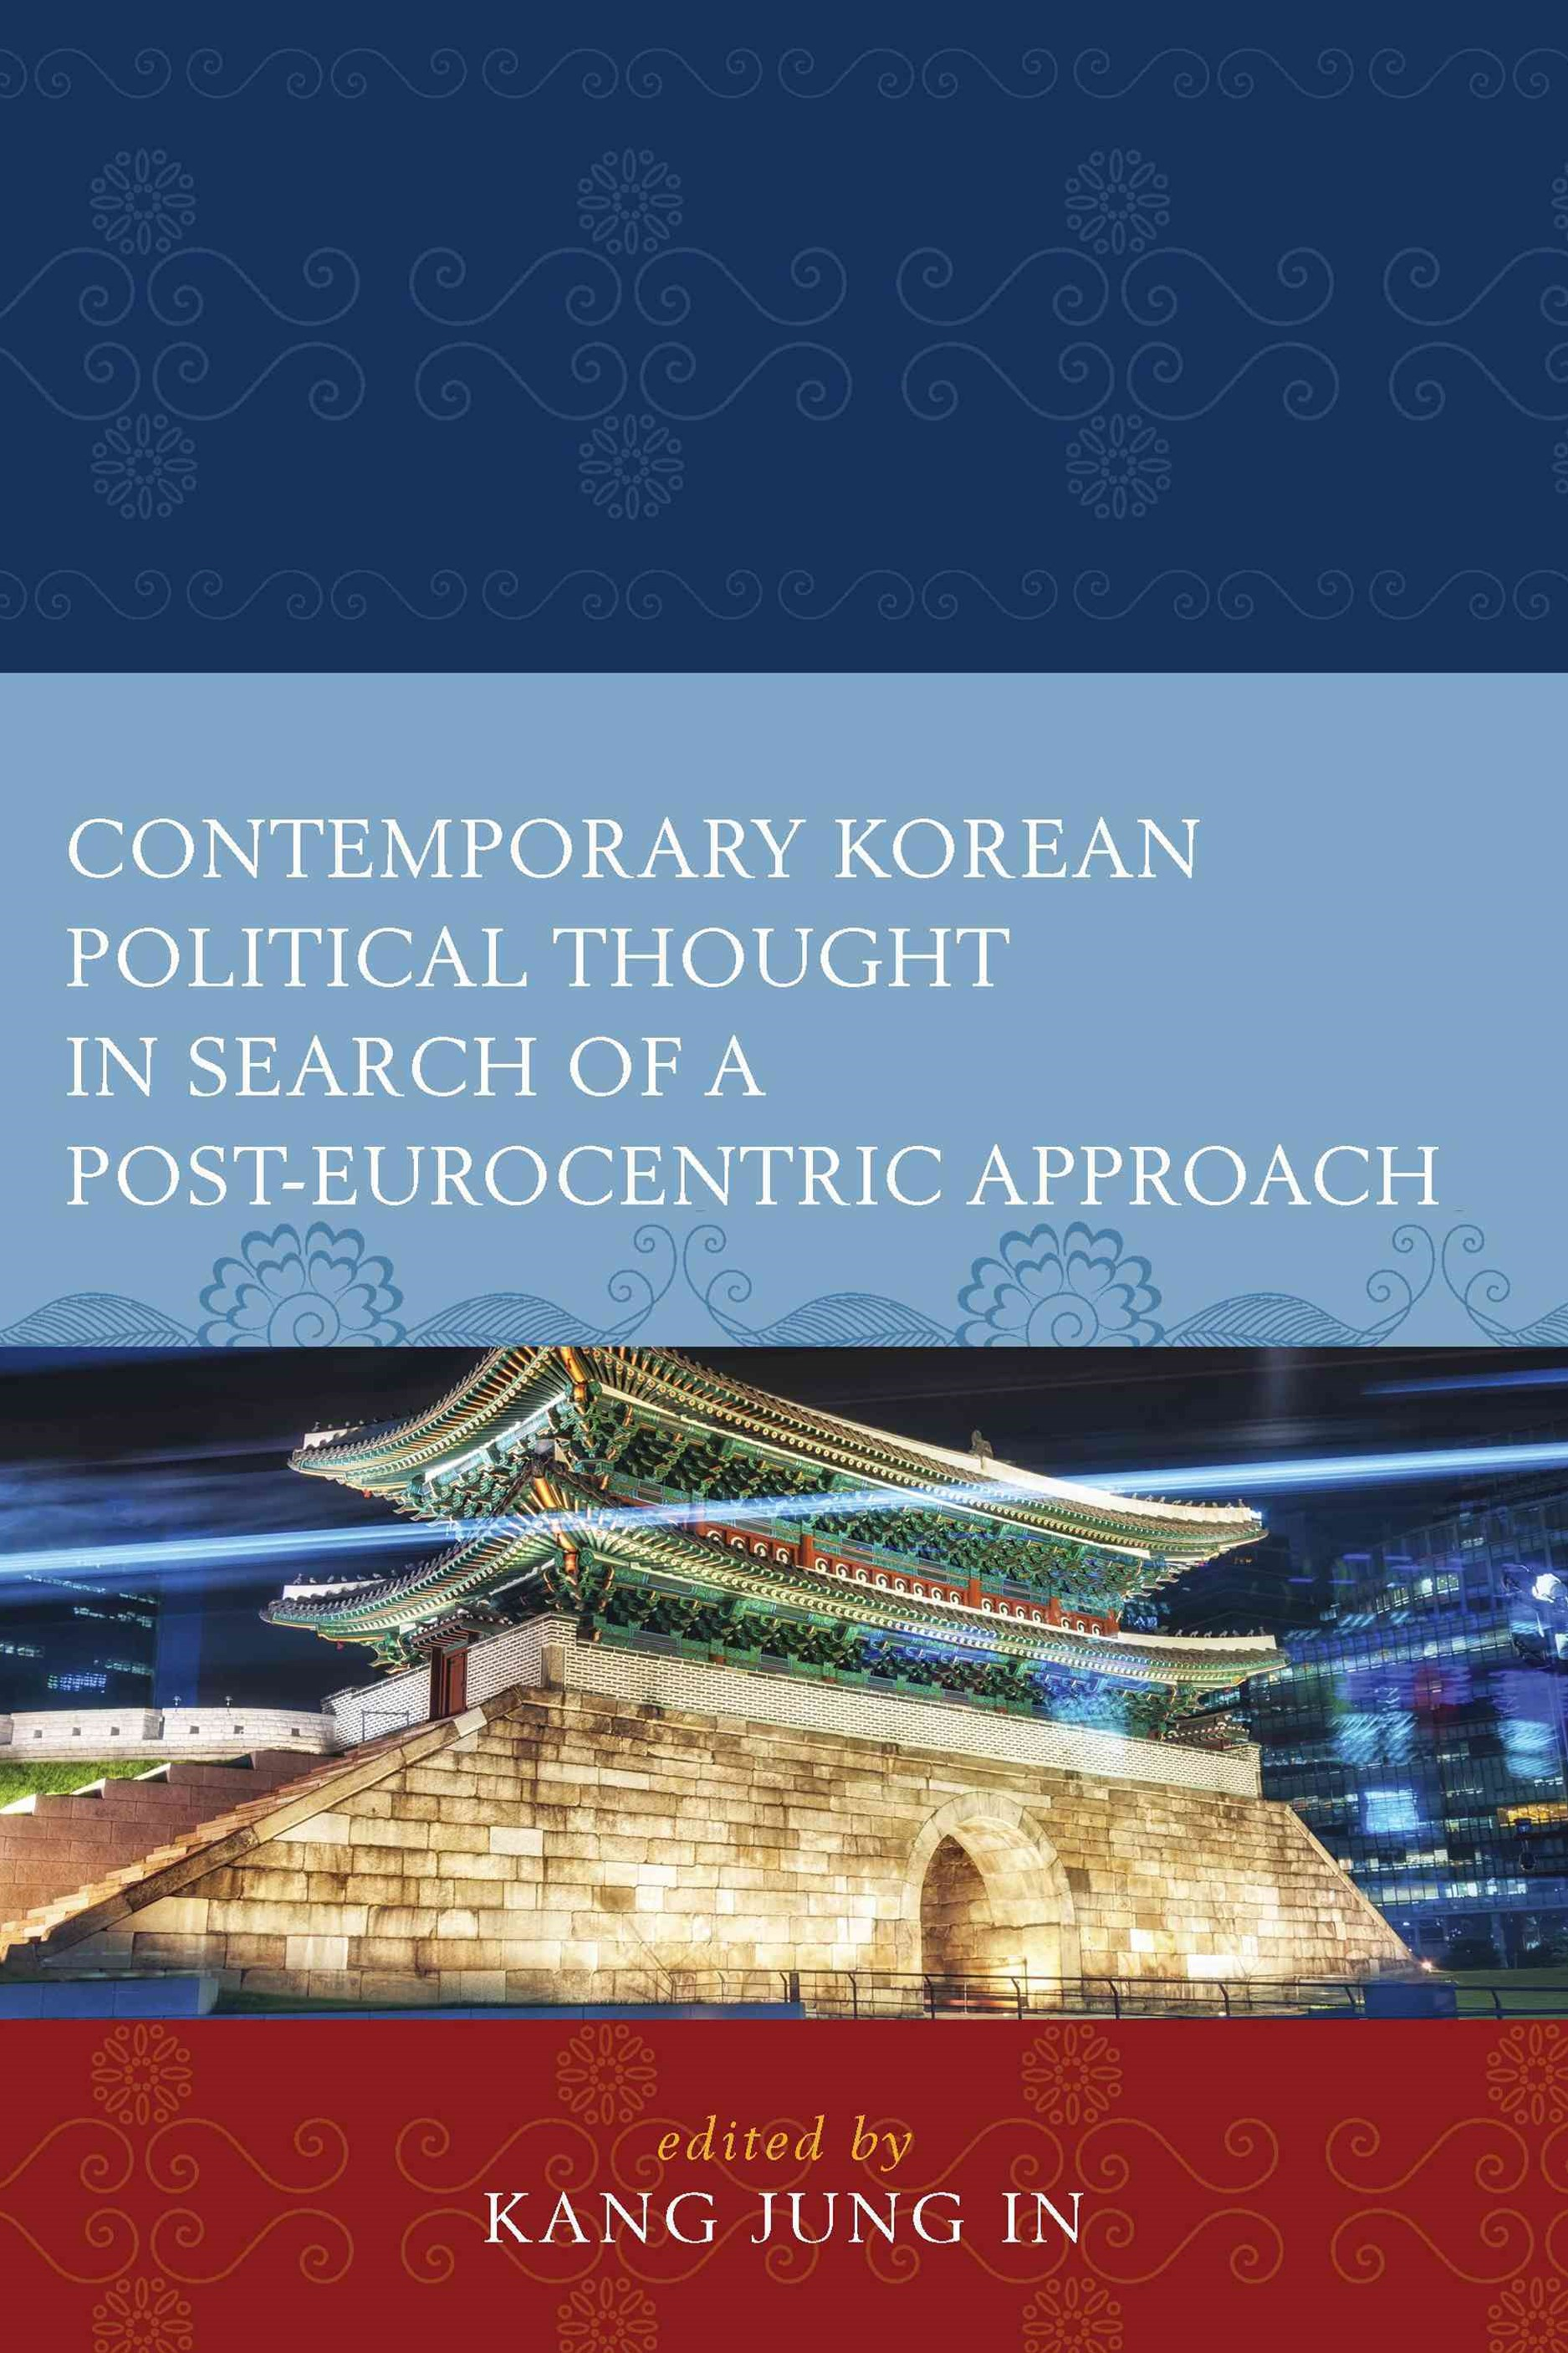 Contemporary Korean Political Thought in Search of a Post-Eurocentric Approach